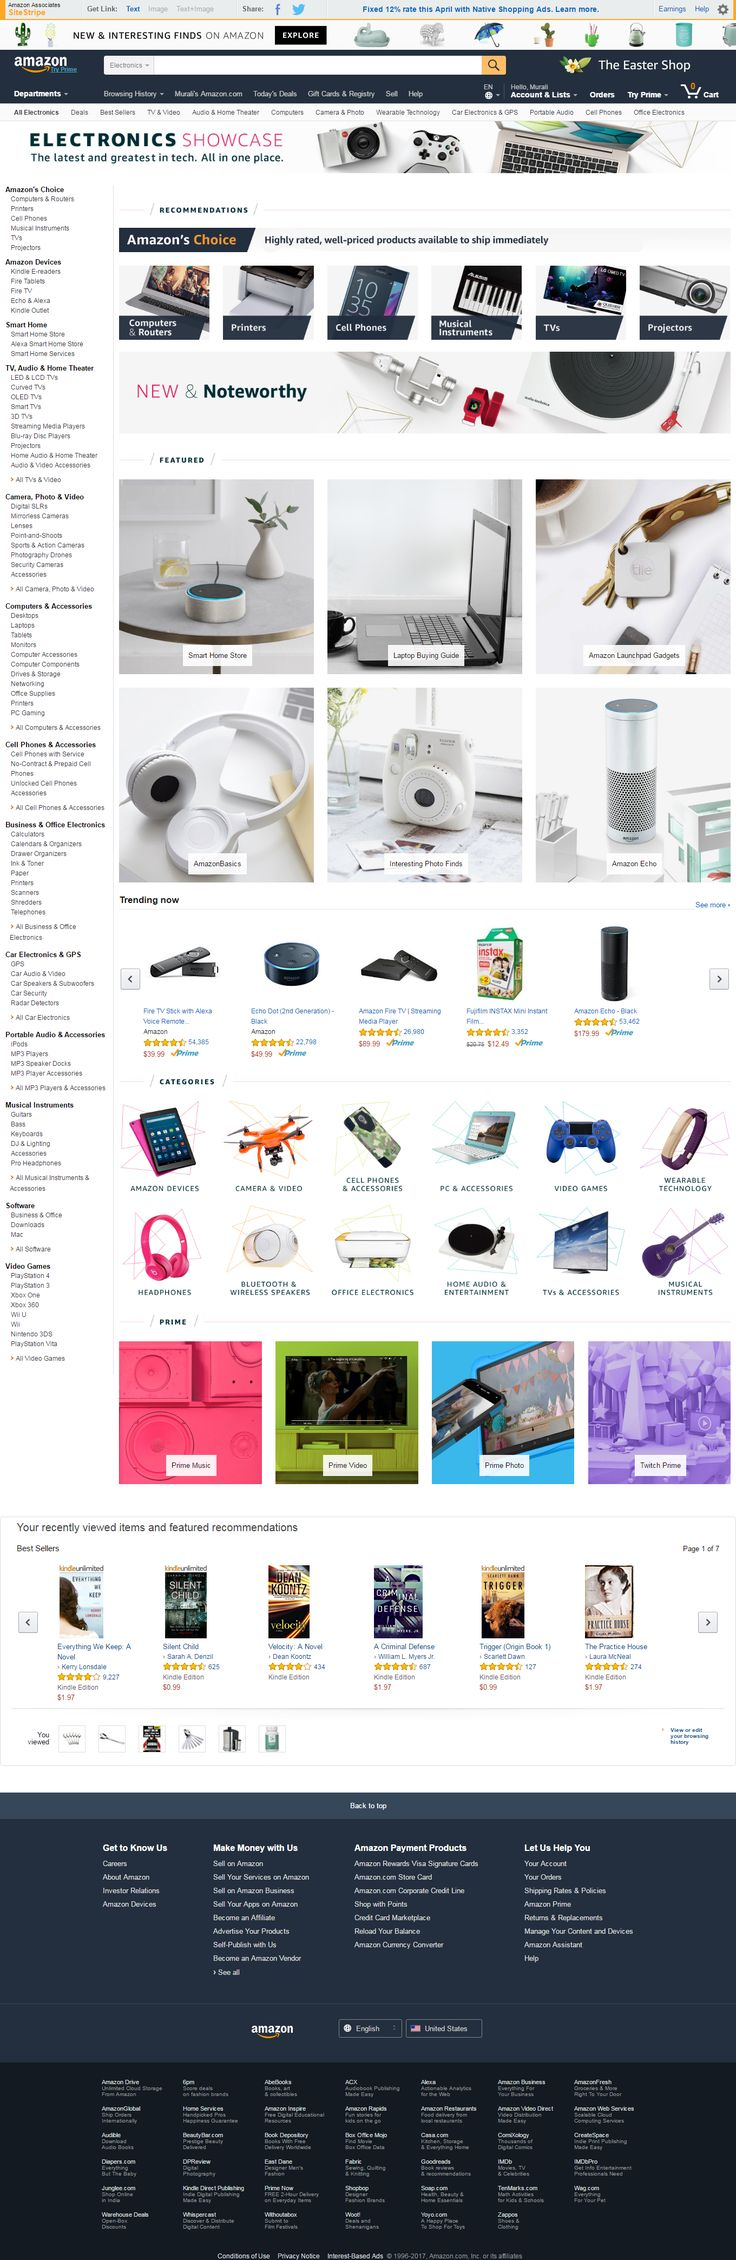 Amazon Latest Arrivals in Electronic Products range -  Related Searches: galaxy s7 edge galaxy s7 edge, best gloves for the cold, ipad mini, air max 90, iphone 6s 32gb, iphone 7 cases, air max 2017, nike air jordan, samsung edge 7, apple iphone 6, samsung s6 edge plus, nike air max 2017, iwatch bands, 43 inch tv, tv lg 42, womens board shorts, nike...